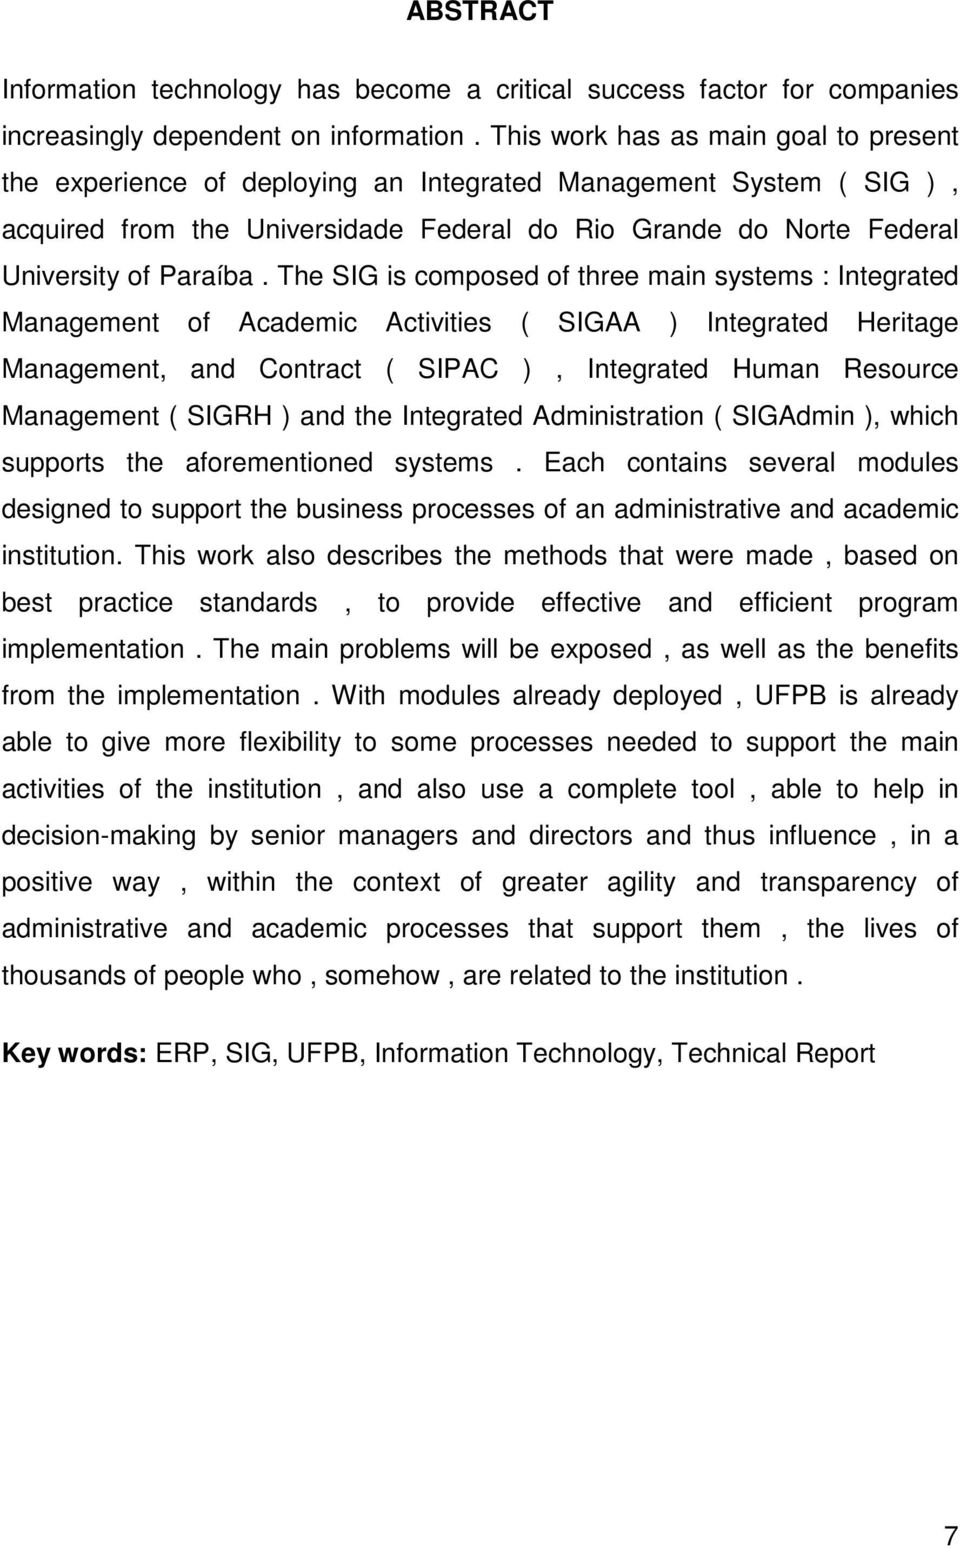 The SIG is composed of three main systems : Integrated Management of Academic Activities ( SIGAA ) Integrated Heritage Management, and Contract ( SIPAC ), Integrated Human Resource Management ( SIGRH